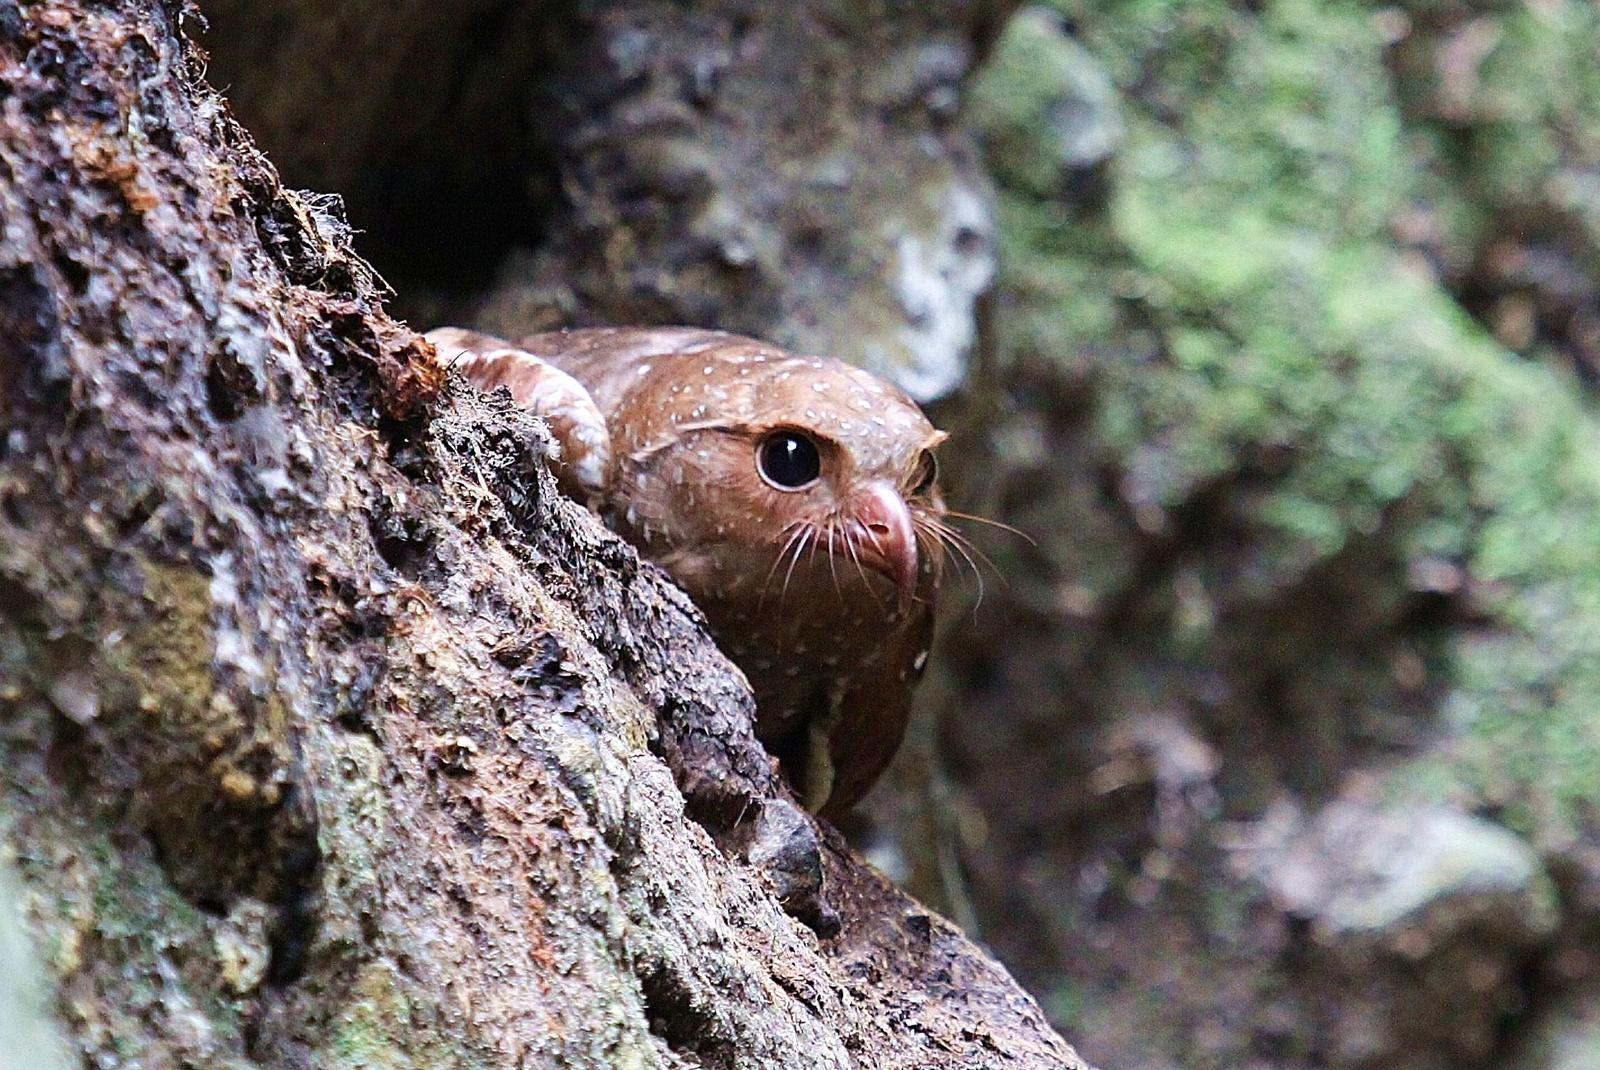 Oilbird Photo by Matthew McCluskey